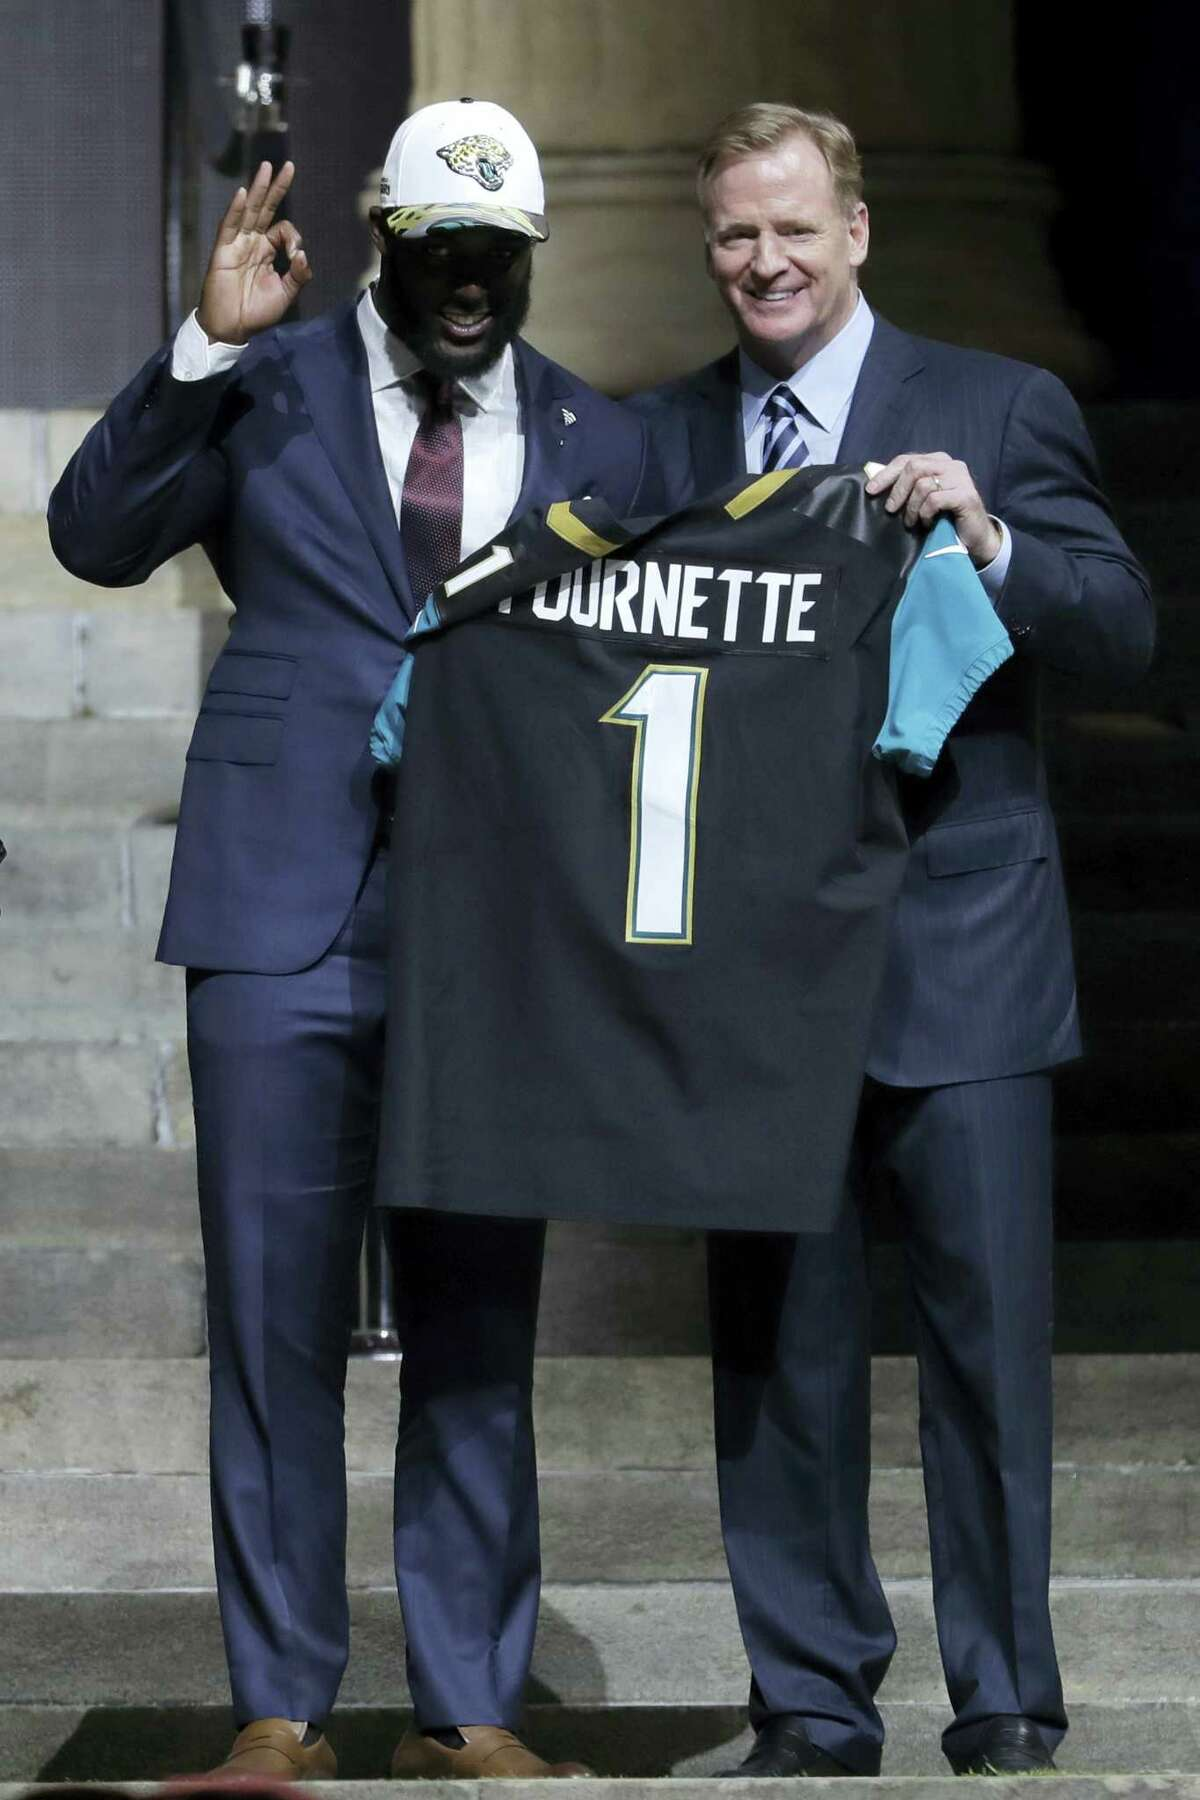 LSU's Leonard Fournette, left, poses with NFL commissioner Roger Goodell after being selected by the Jacksonville Jaguars during the first round of the 2017 NFL football draft, Thursday, April 27, 2017, in Philadelphia. (AP Photo/Julio Cortez)